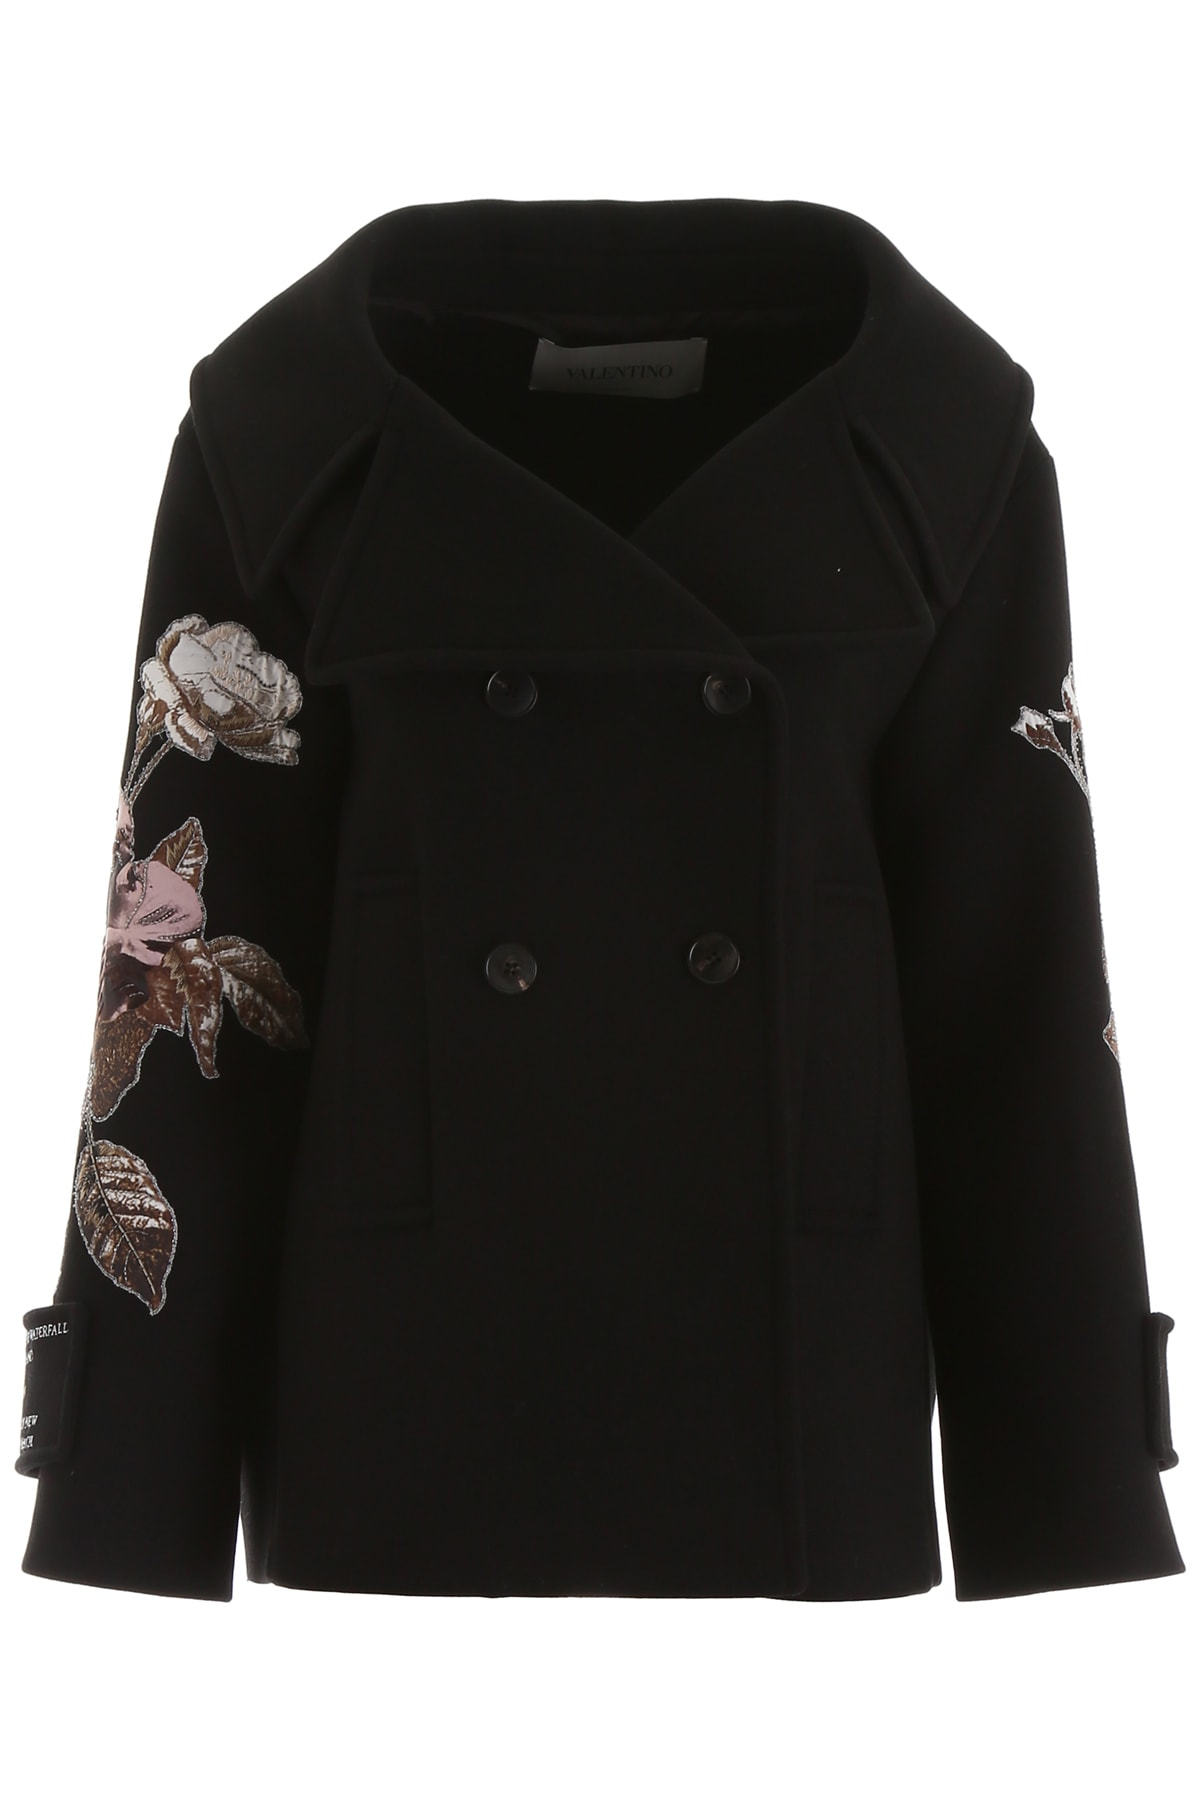 Valentino Lovers Patch Coat